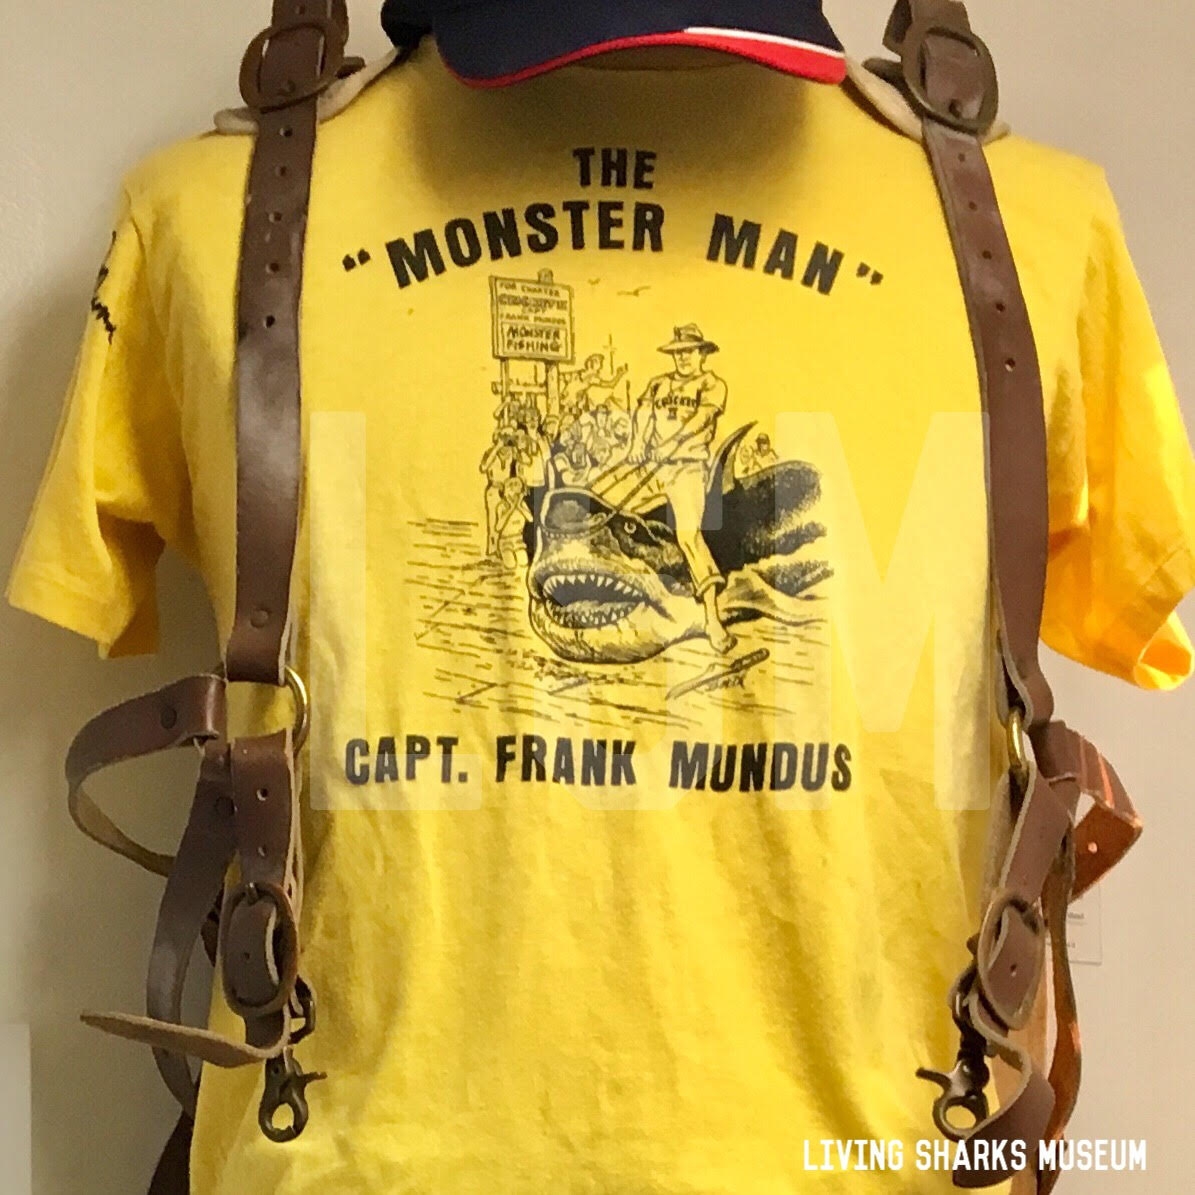 MONSTER SHIRT - Originally worn by Captain Frank Mundus himself, this actual shirt was his personal attire for photos and publicity events. When he retired from his vessel Cricket II, he autographed the shirt as a gift to his first mate and pro collector Chris Kiszka. The illustration on the shirt was designed by famed Montauk comic artist Frank Borth III, who also had whimsically illustrated books by Frank Mundus._______________________SIGNED T-SHIRT WORN BY FRANK MUNDUSFROM THE VESSEL CRICKET IIAcquired by Chris Kiszka, First Mate aboard Cricket IIPrivate Collection - Keith M. Cowley